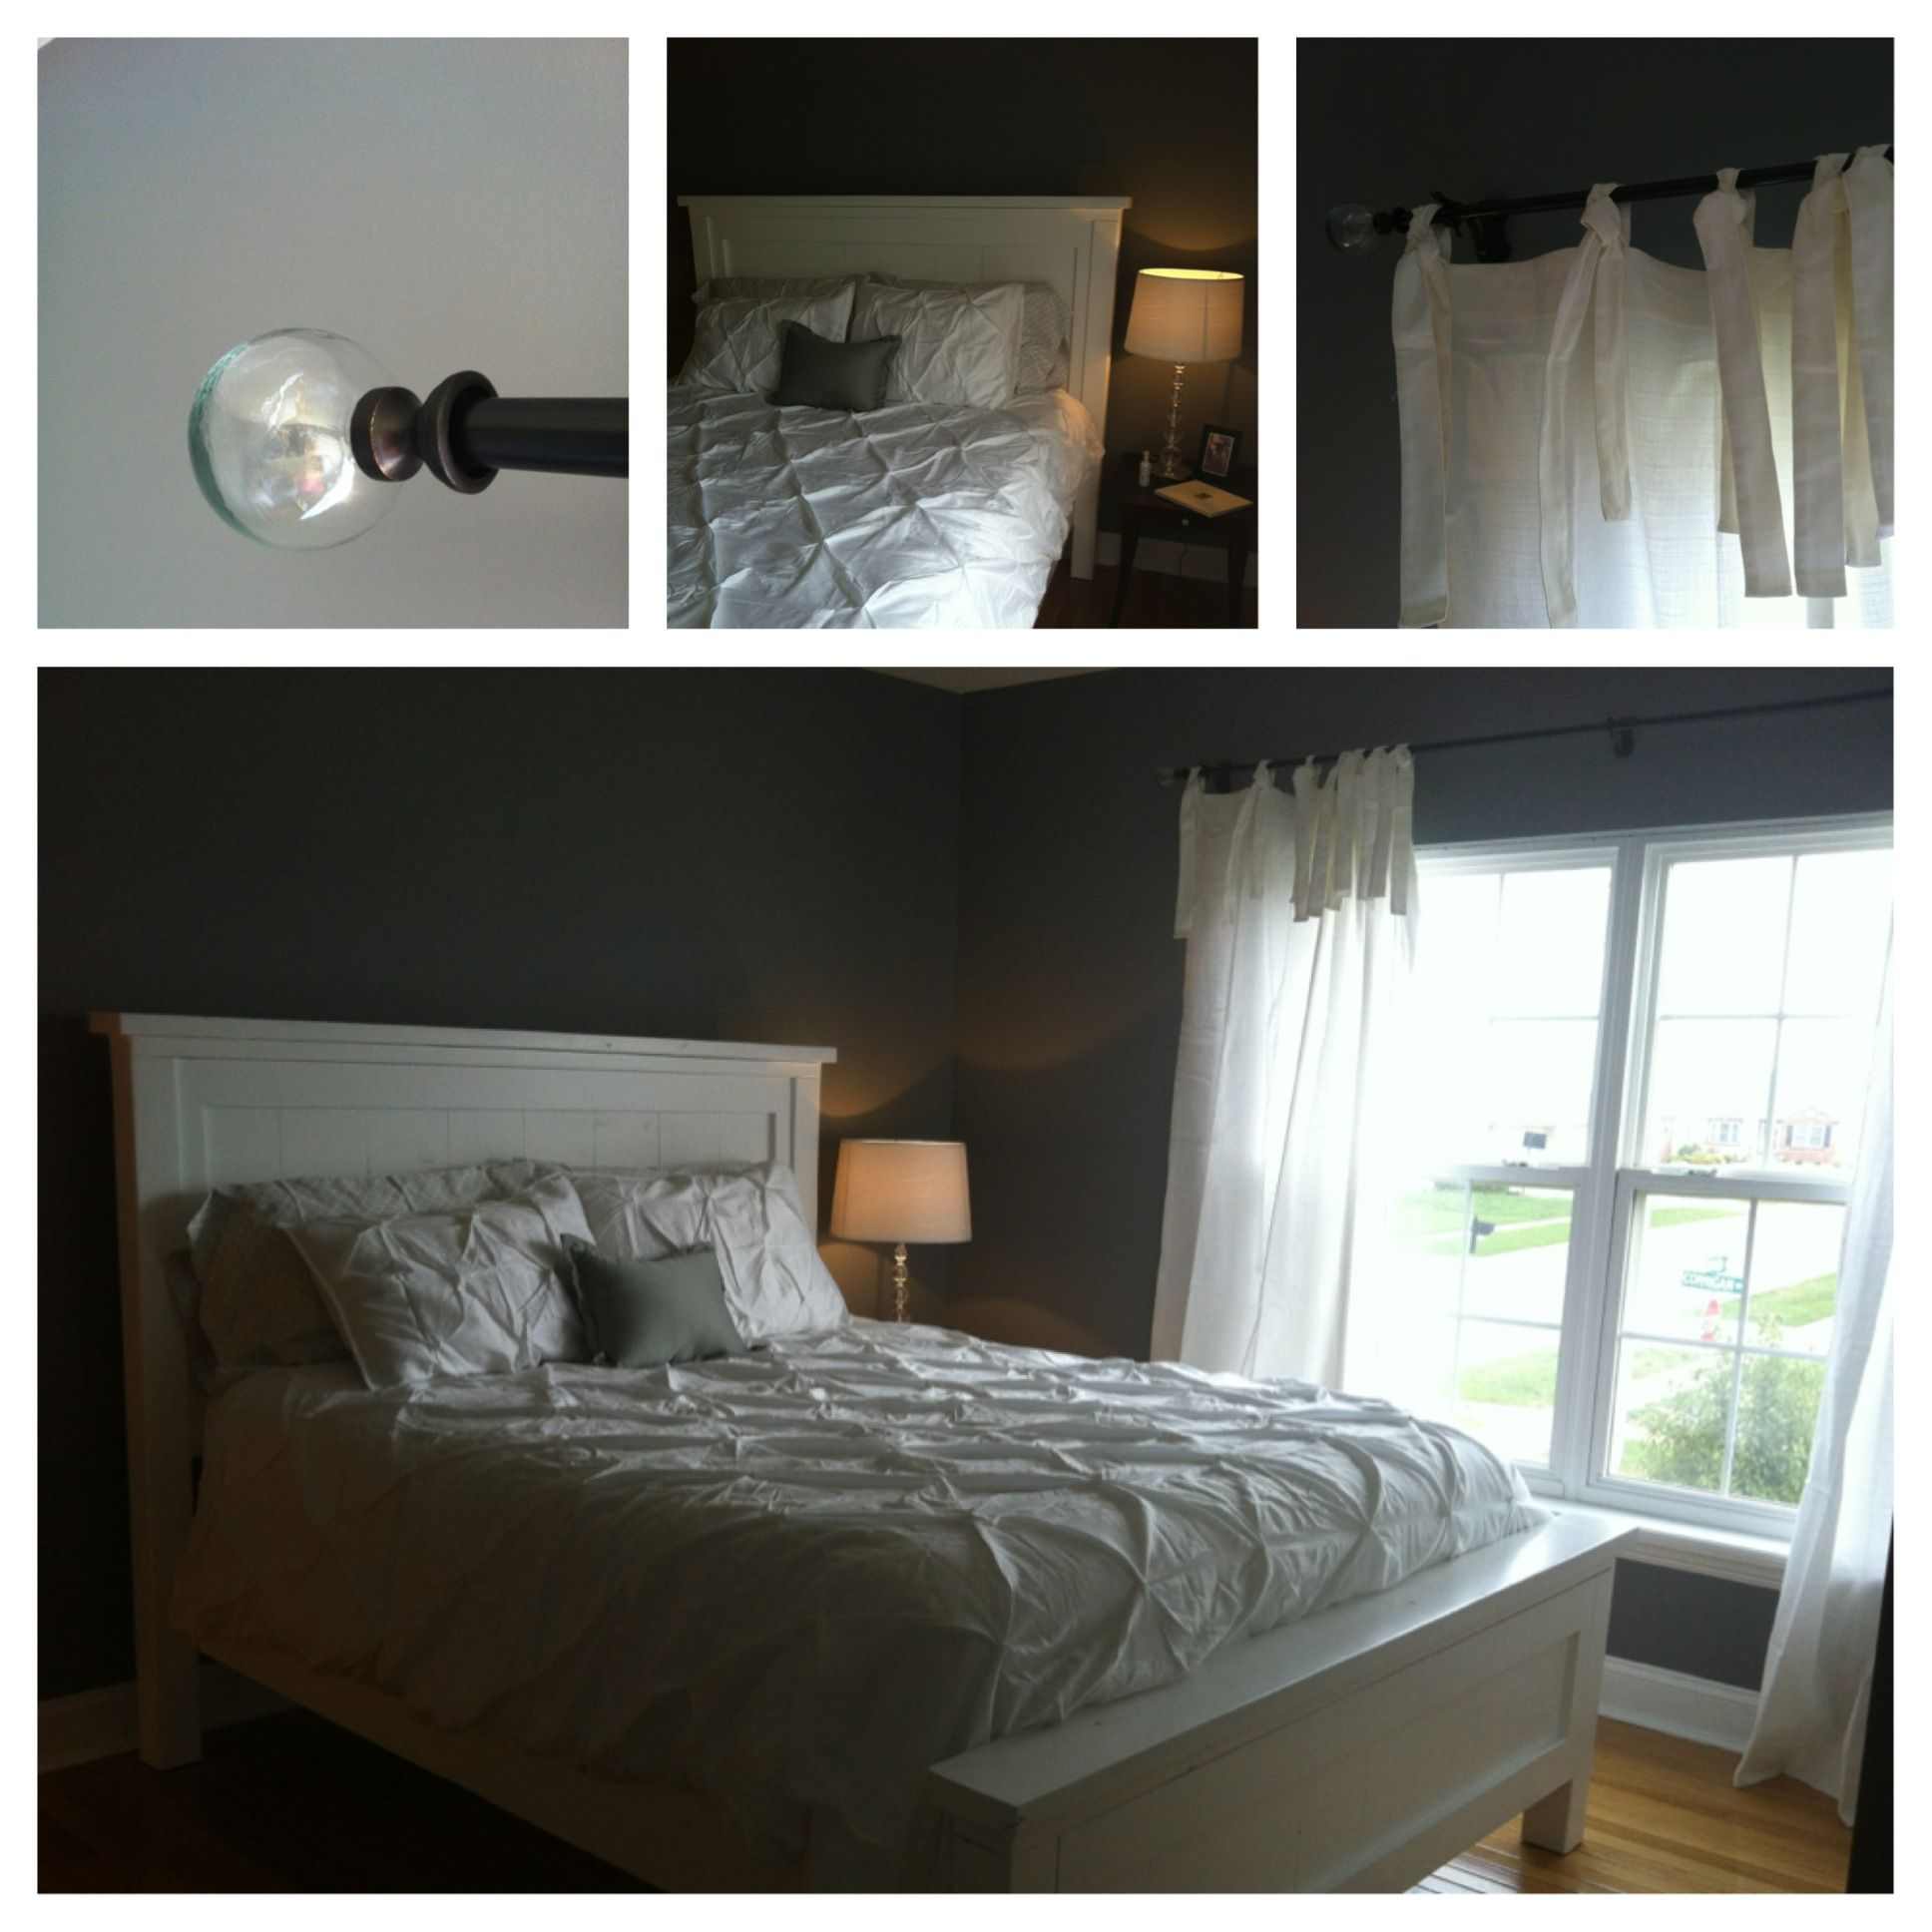 Bed built from farmhouse plans on drapes and